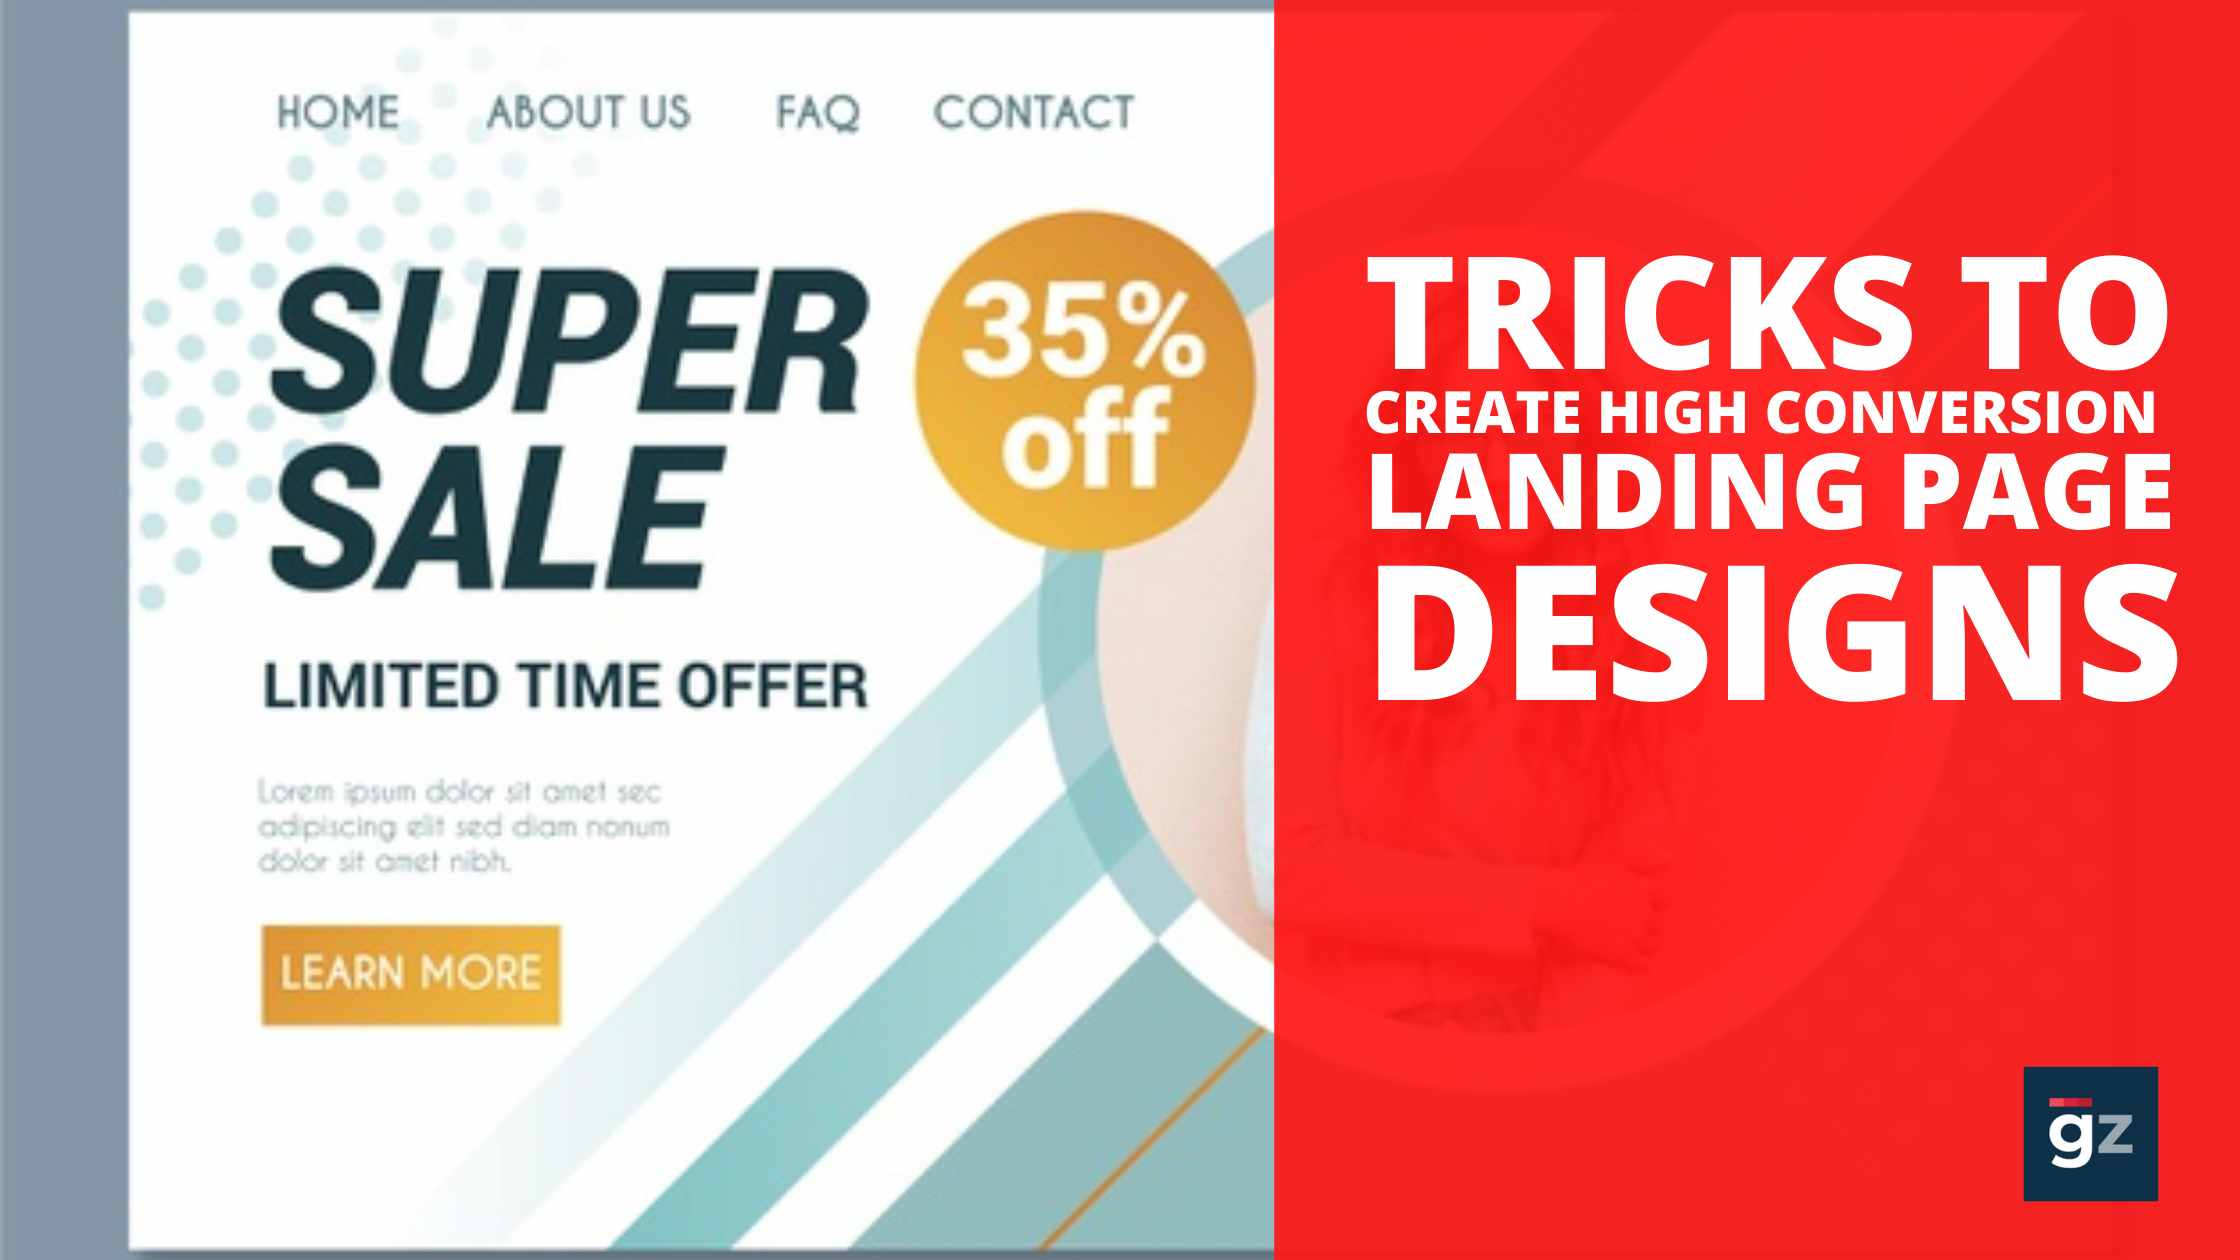 Tricks to Create High Conversion Landing Page Designs